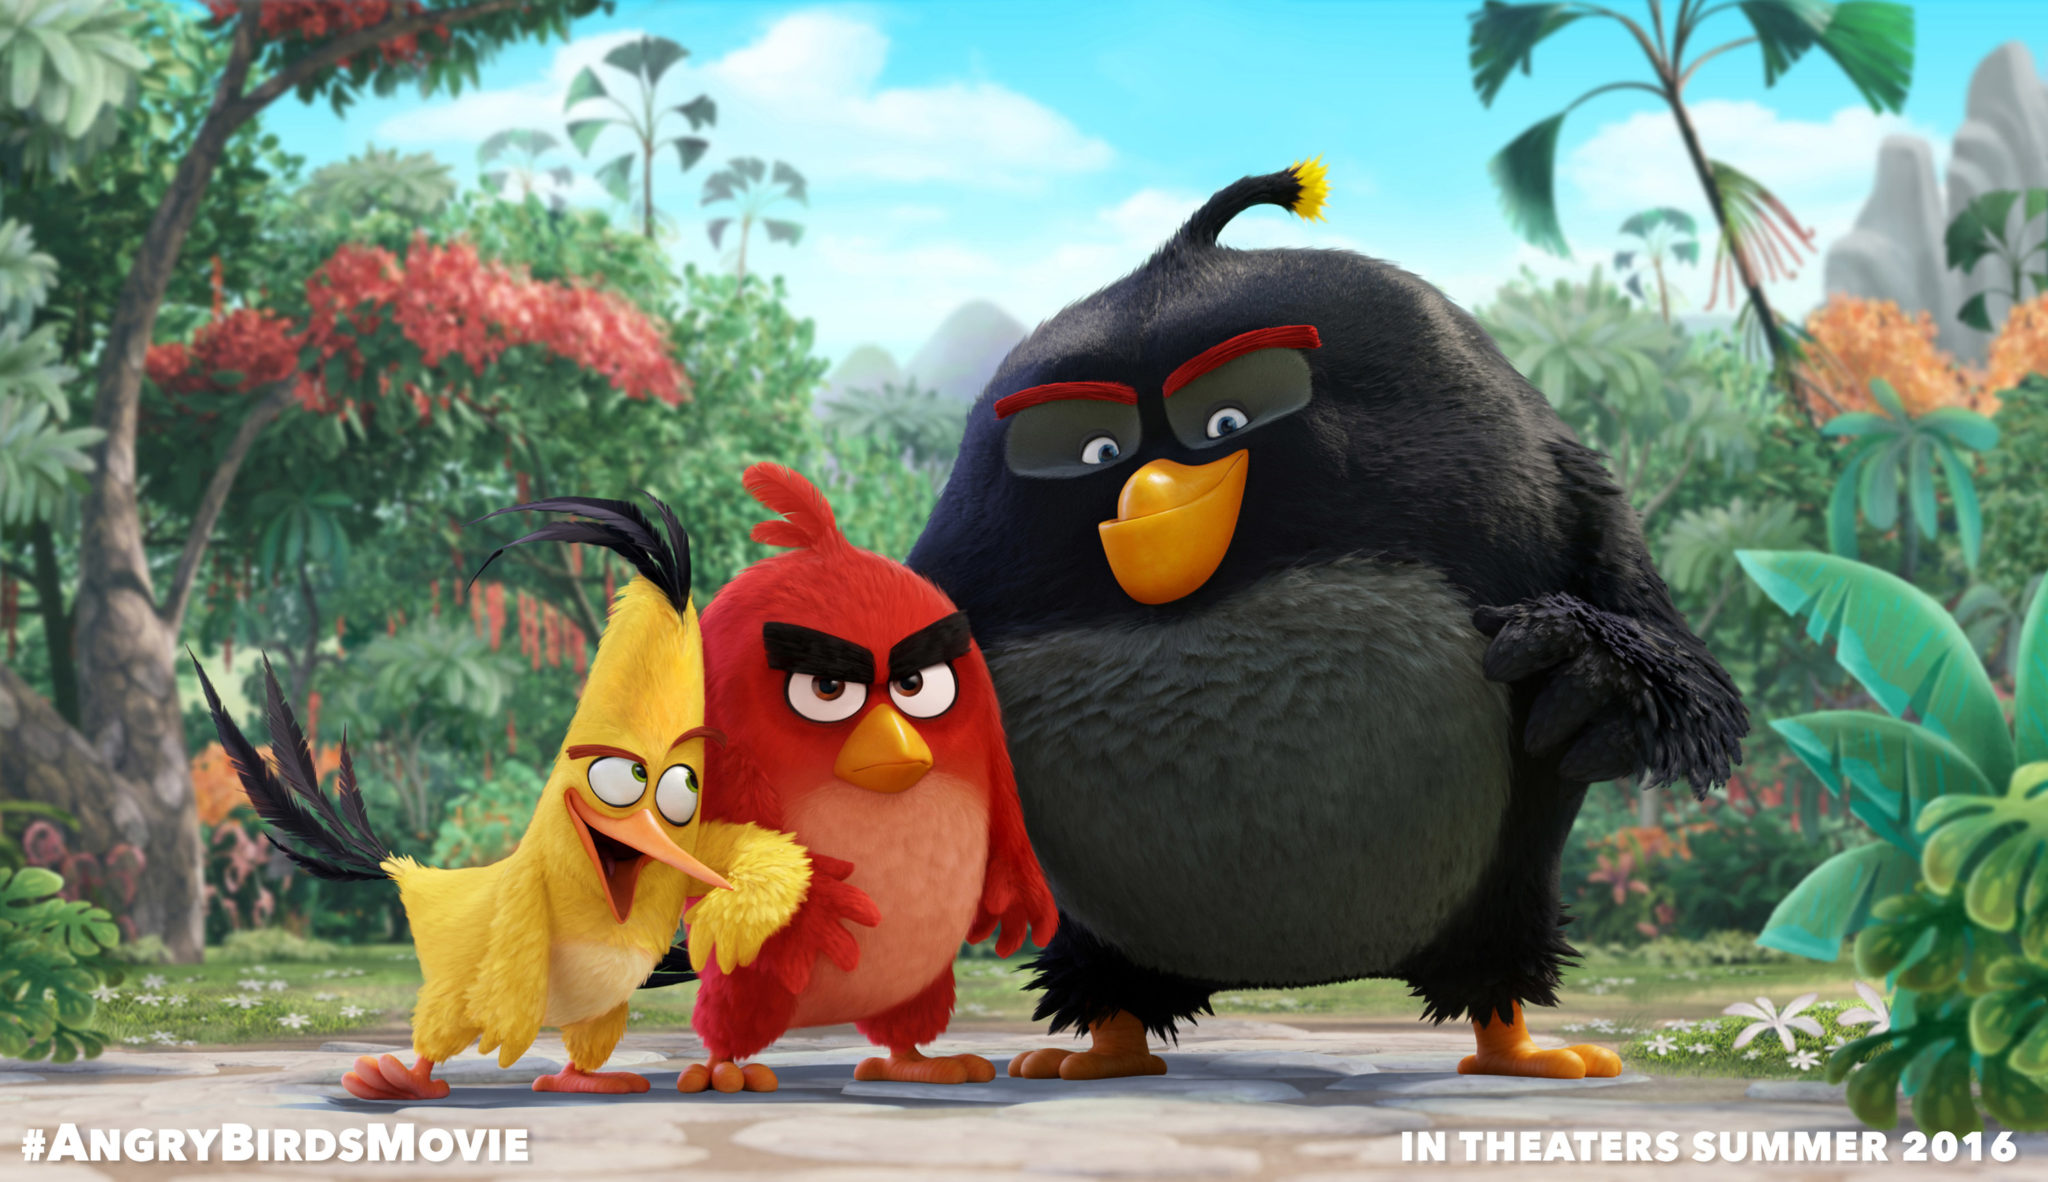 Angry Birds Movie Characters: First Look At Posters For Sony's 'Angry Birds'